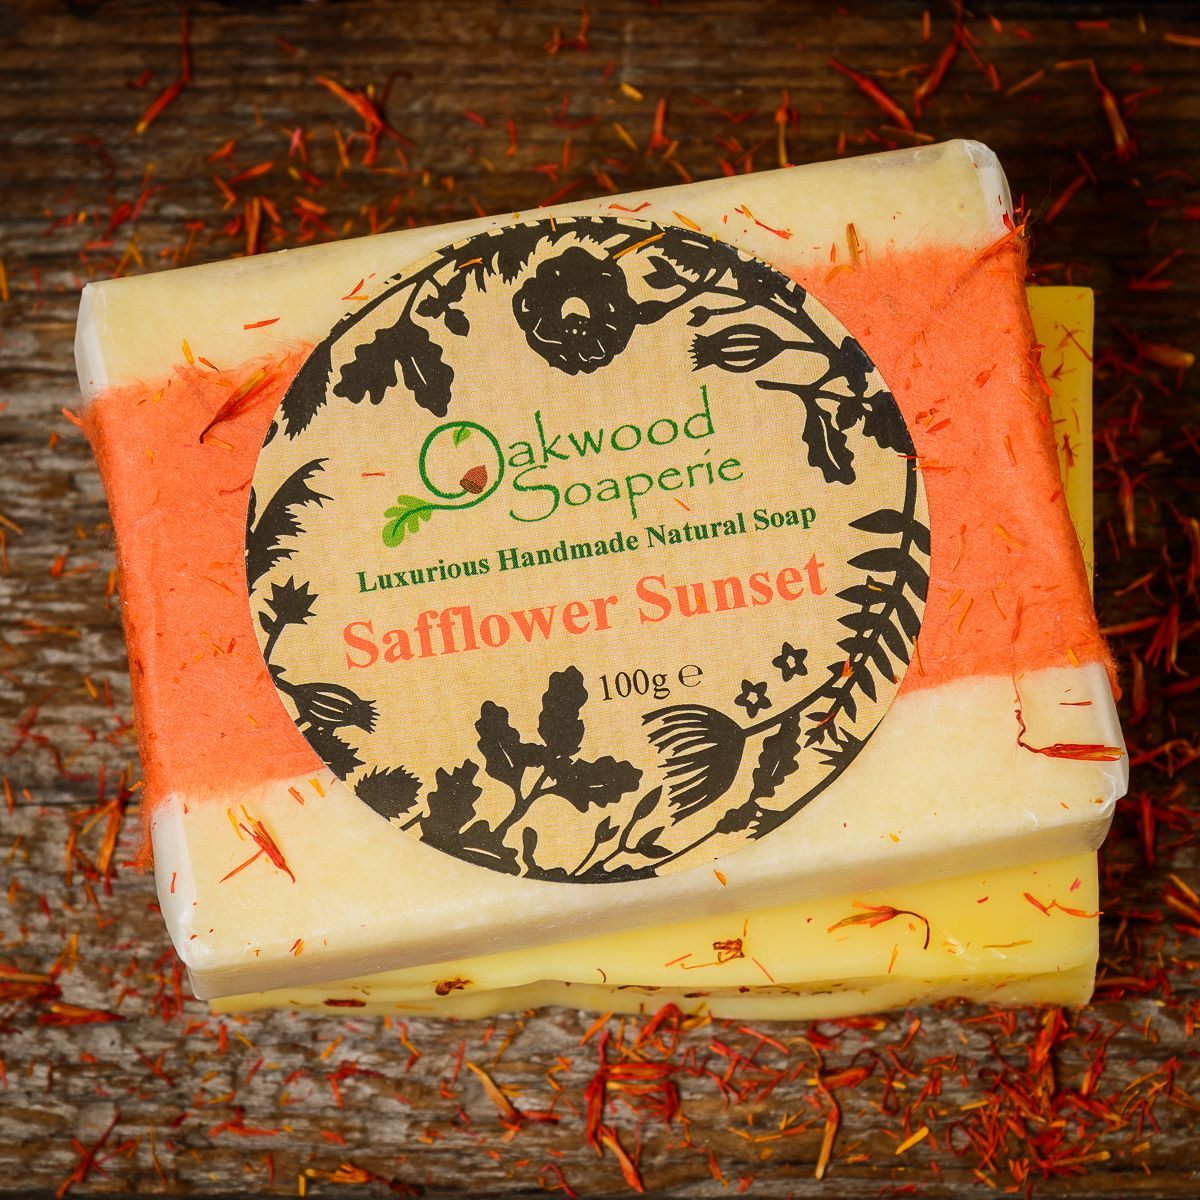 SALE - Safflower Sunset Handmade soap